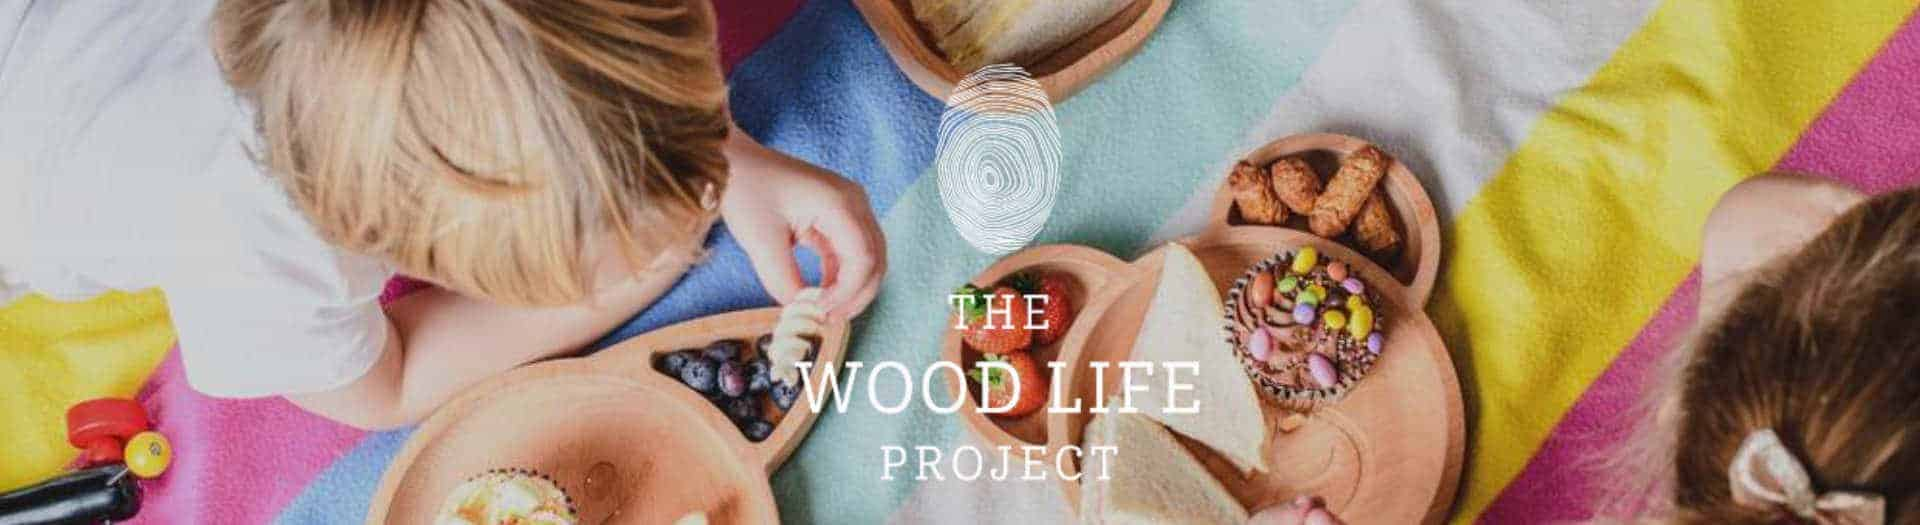 1920x525 wood life project header with logo